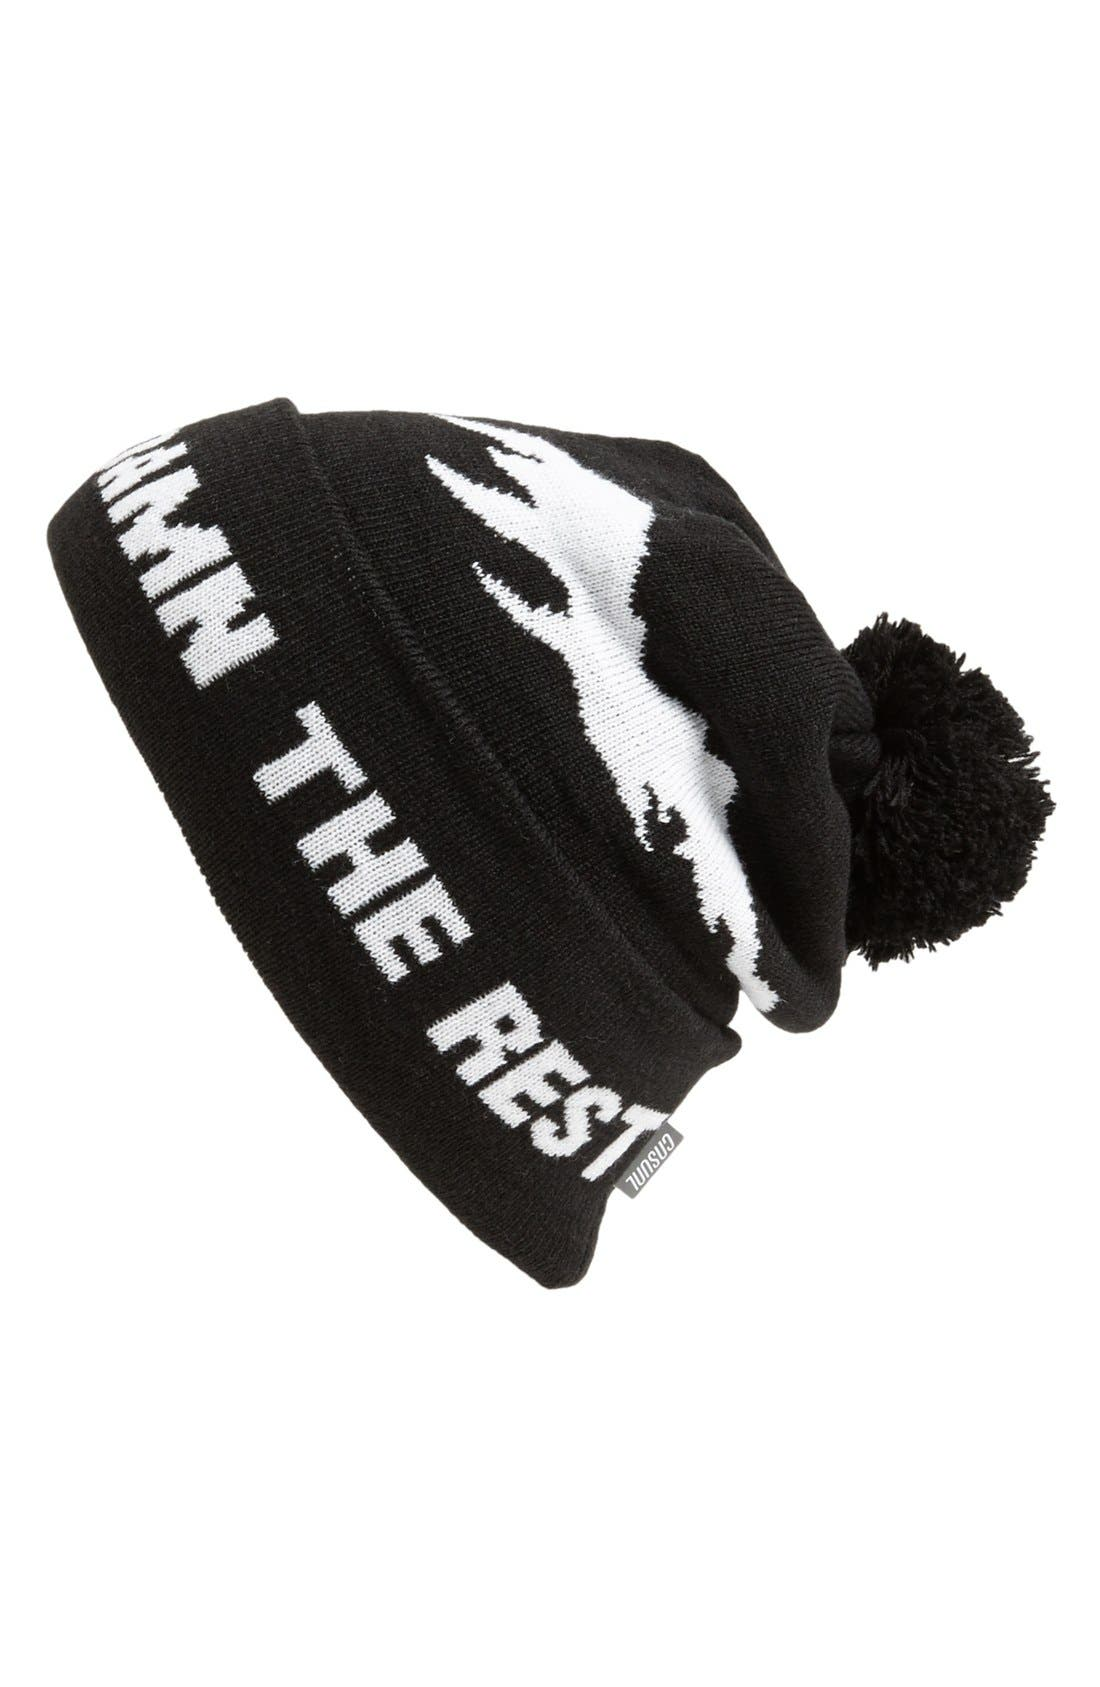 Main Image - Casual Industrees Knit Cap with Pompom